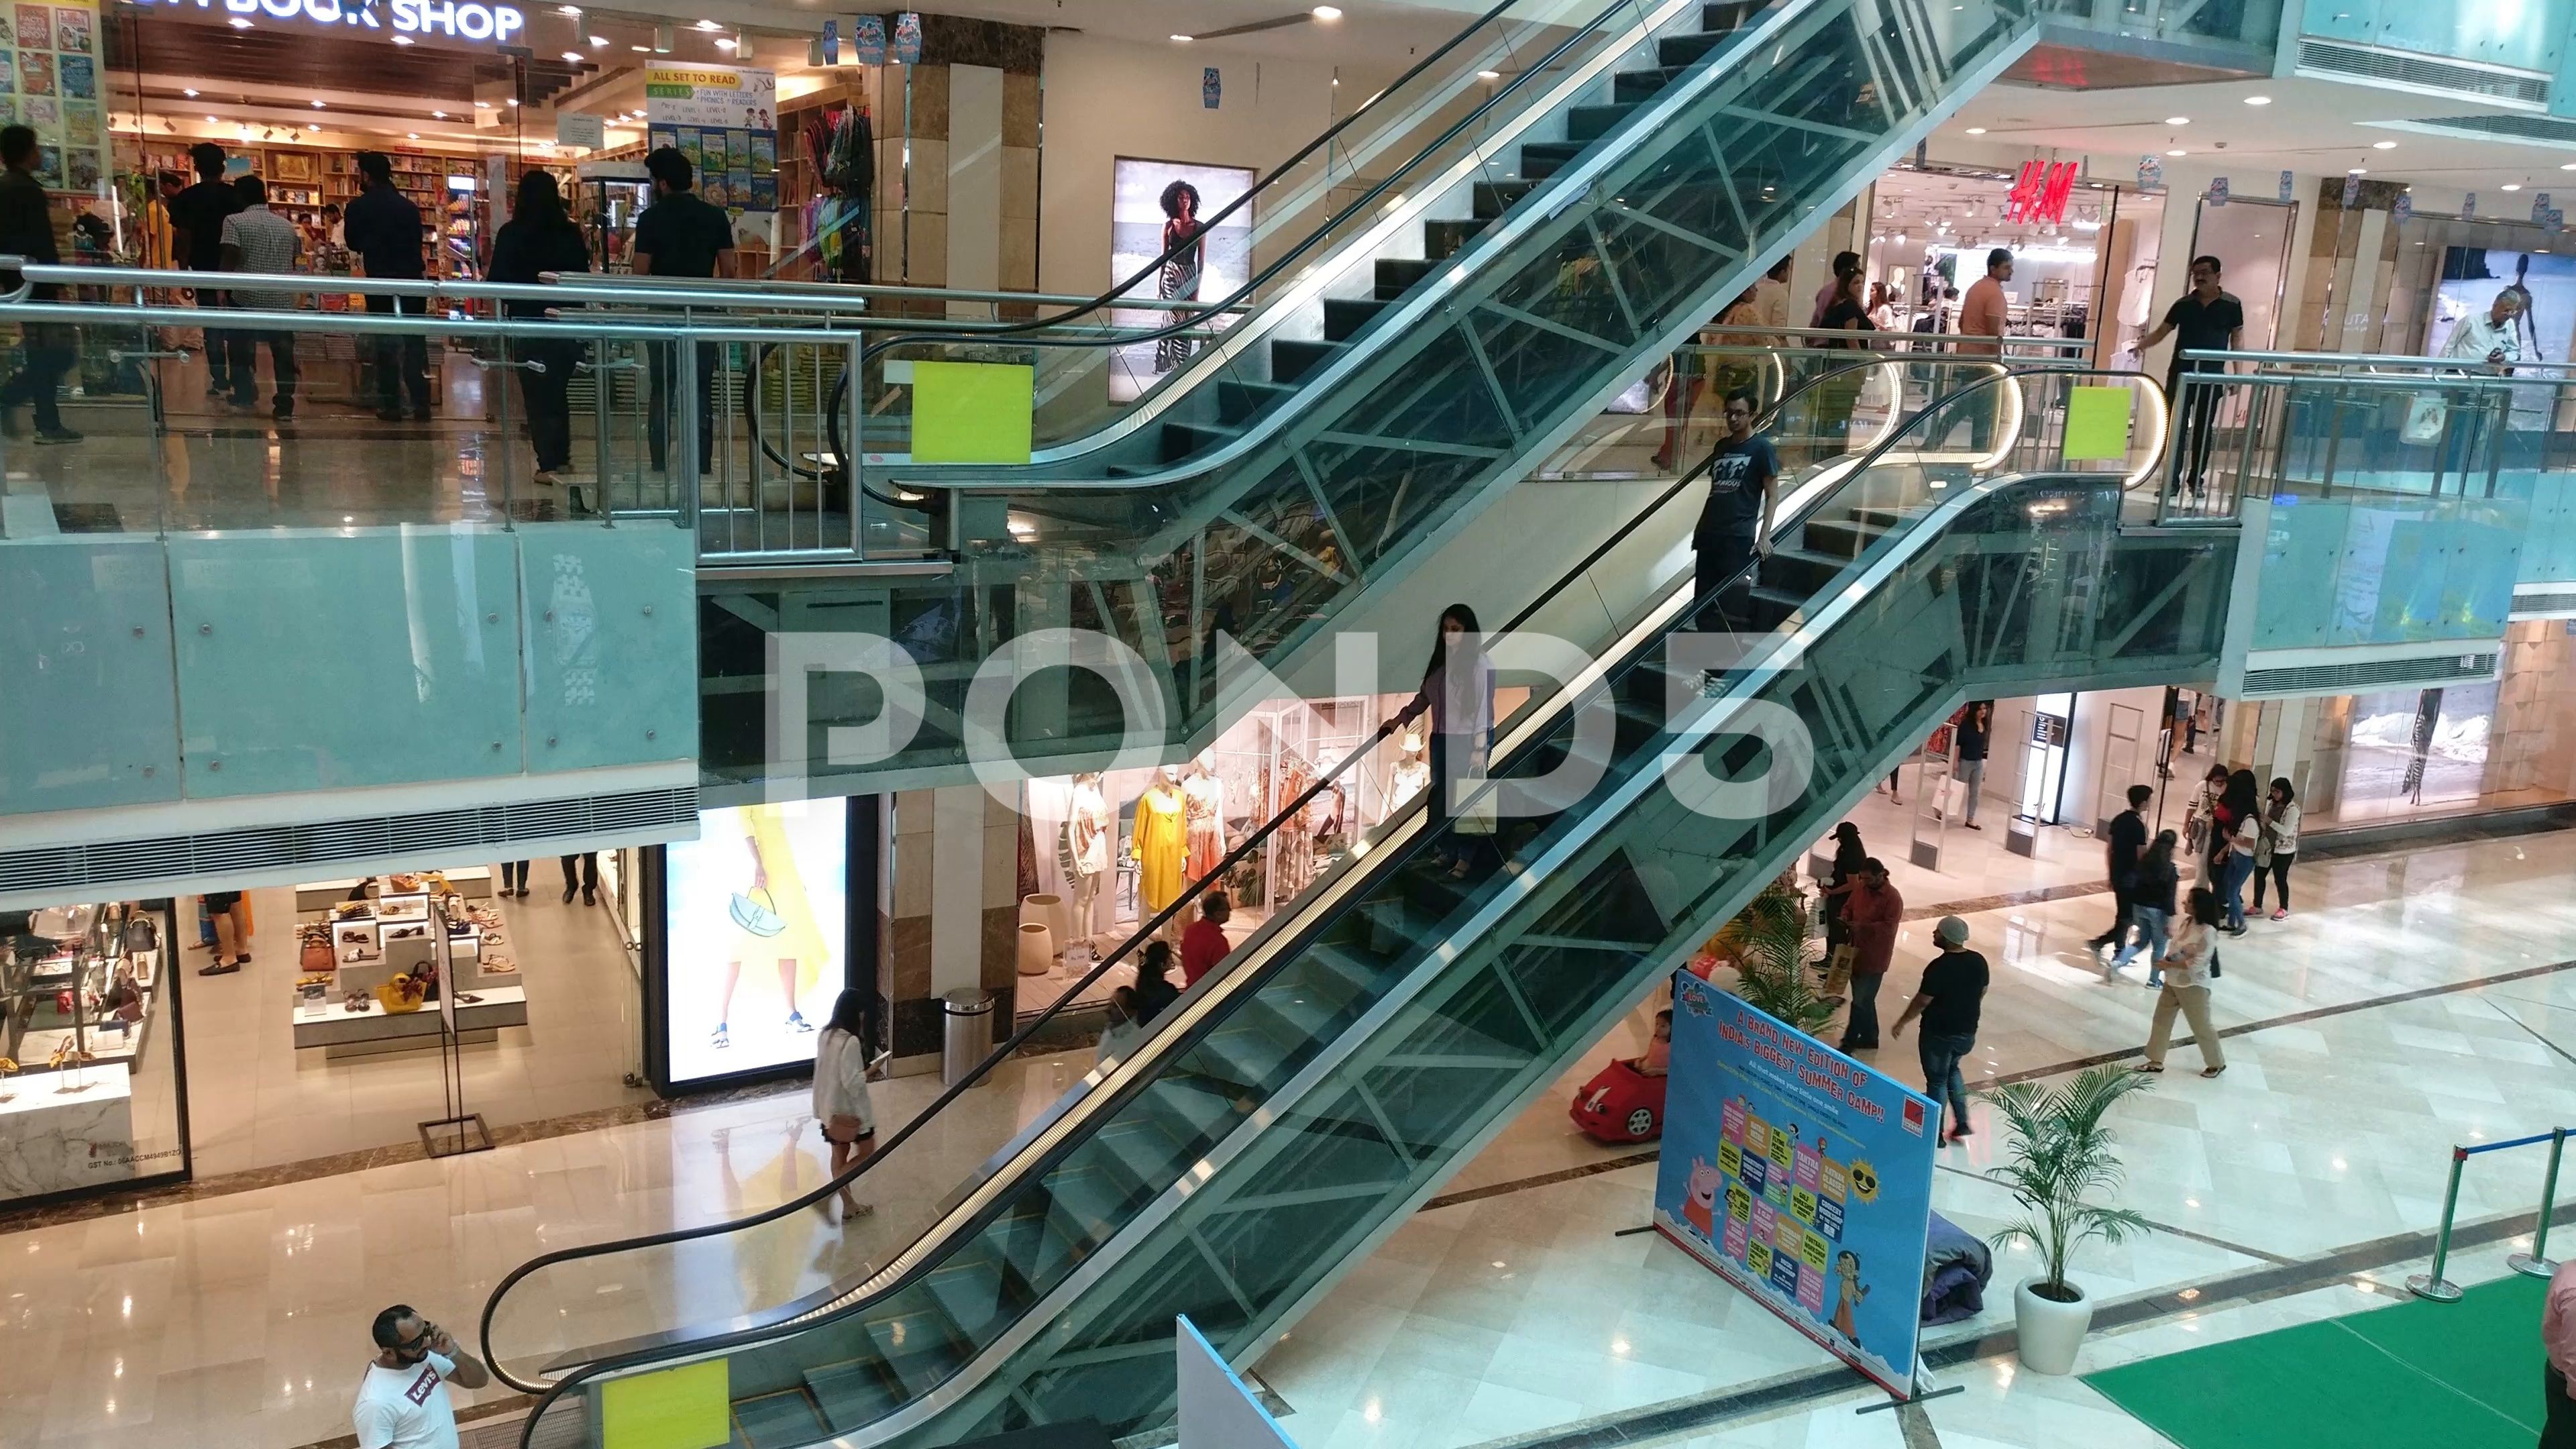 People Moving Down An Escalator In A Busy Shopping Mall In Gurgaon Delhi With Stock Footage Ad Busy Shopping Escalator People Shopping Mall Escalator Mall